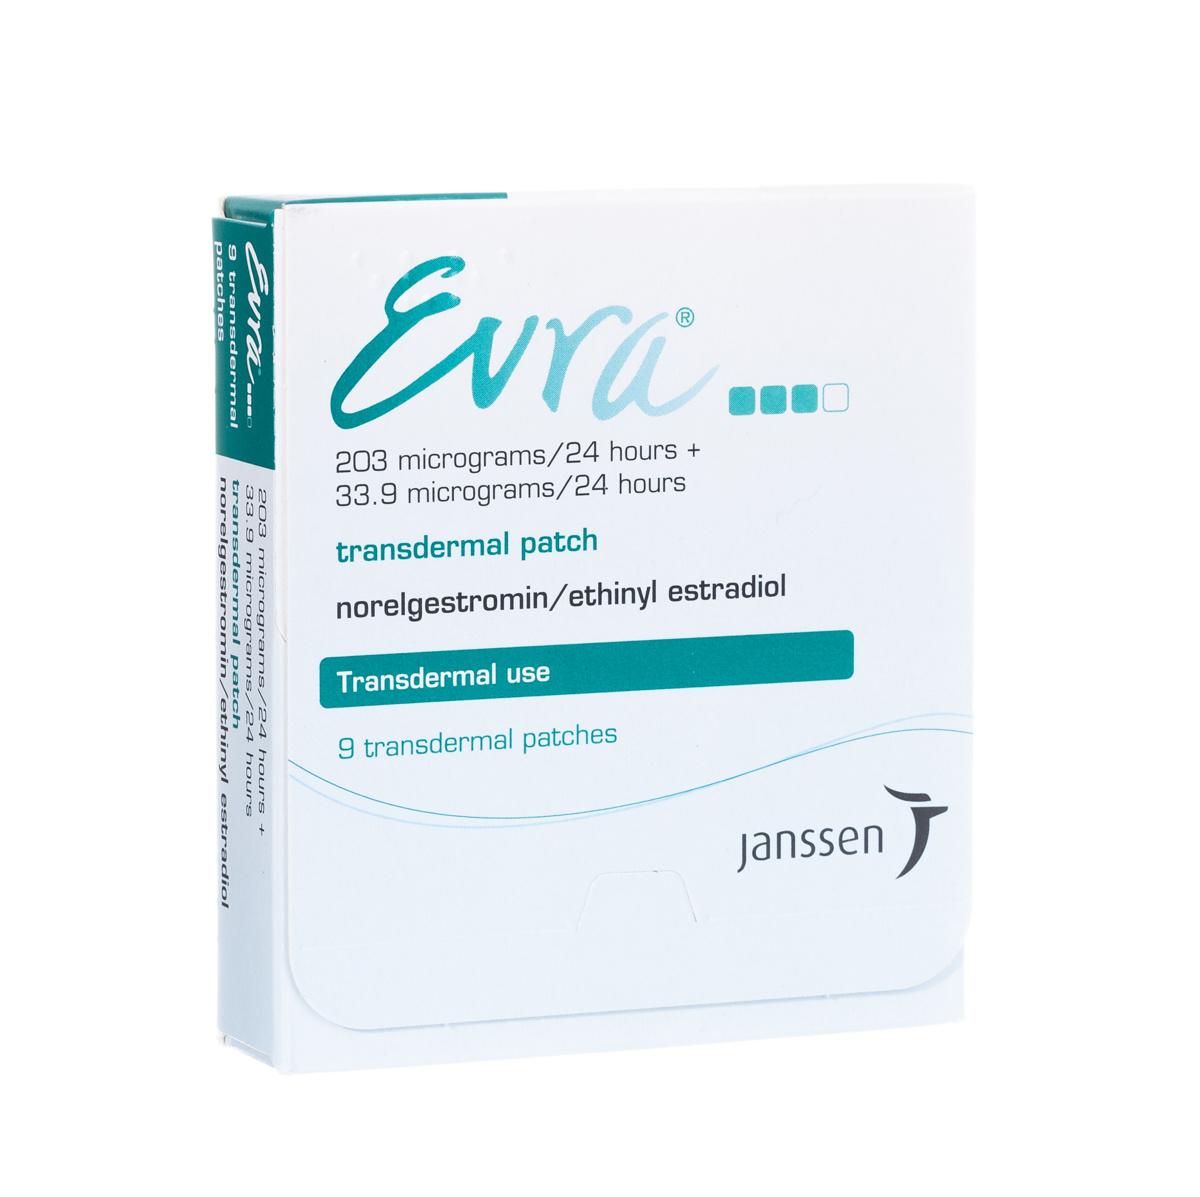 Buy Evra Patch Contraceptive Patch For Birth Control Online Uk Meds